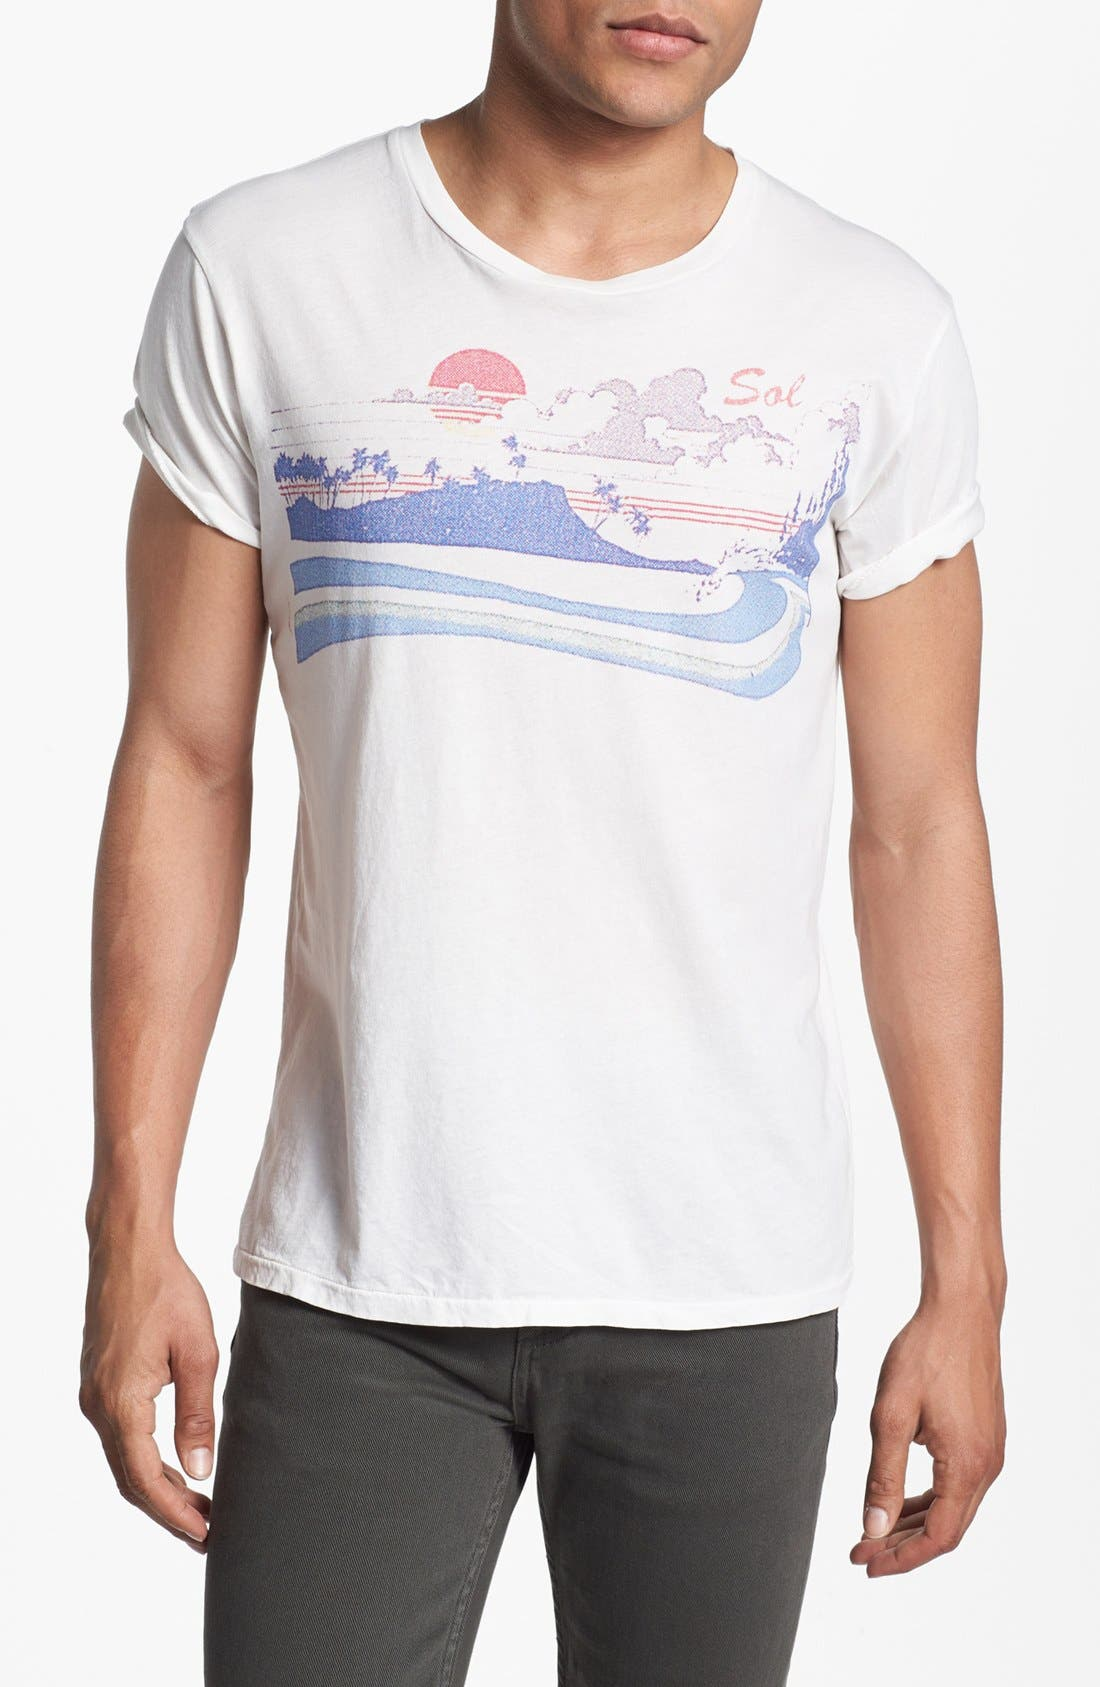 Alternate Image 1 Selected - Sol Angeles 'Sol Surf' Graphic T-Shirt